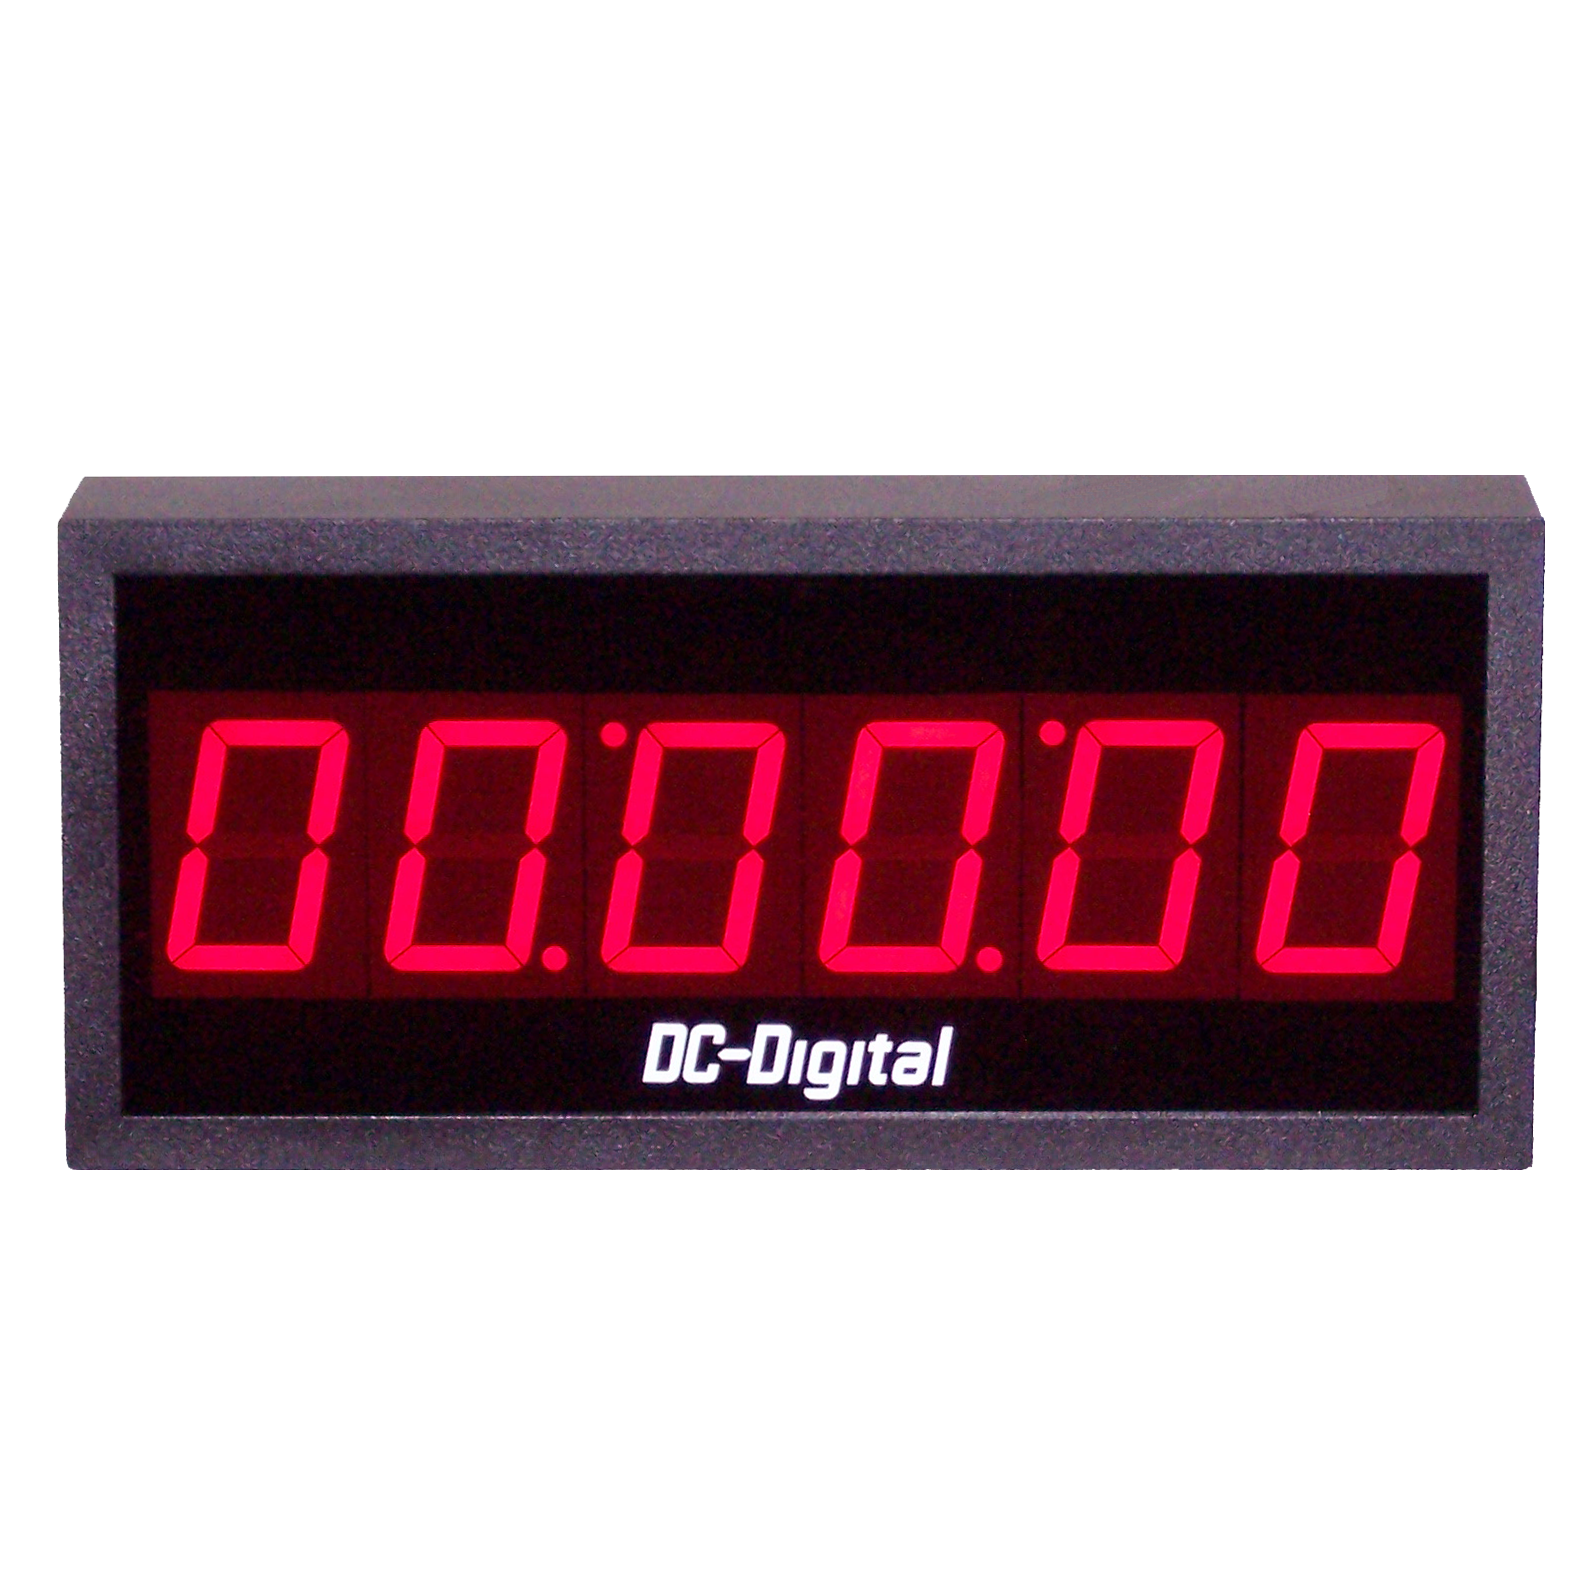 DC-256T-UP-Term-Multi-Input-Controlled-Count-Up-Tmer-2.3-Inch-Digits